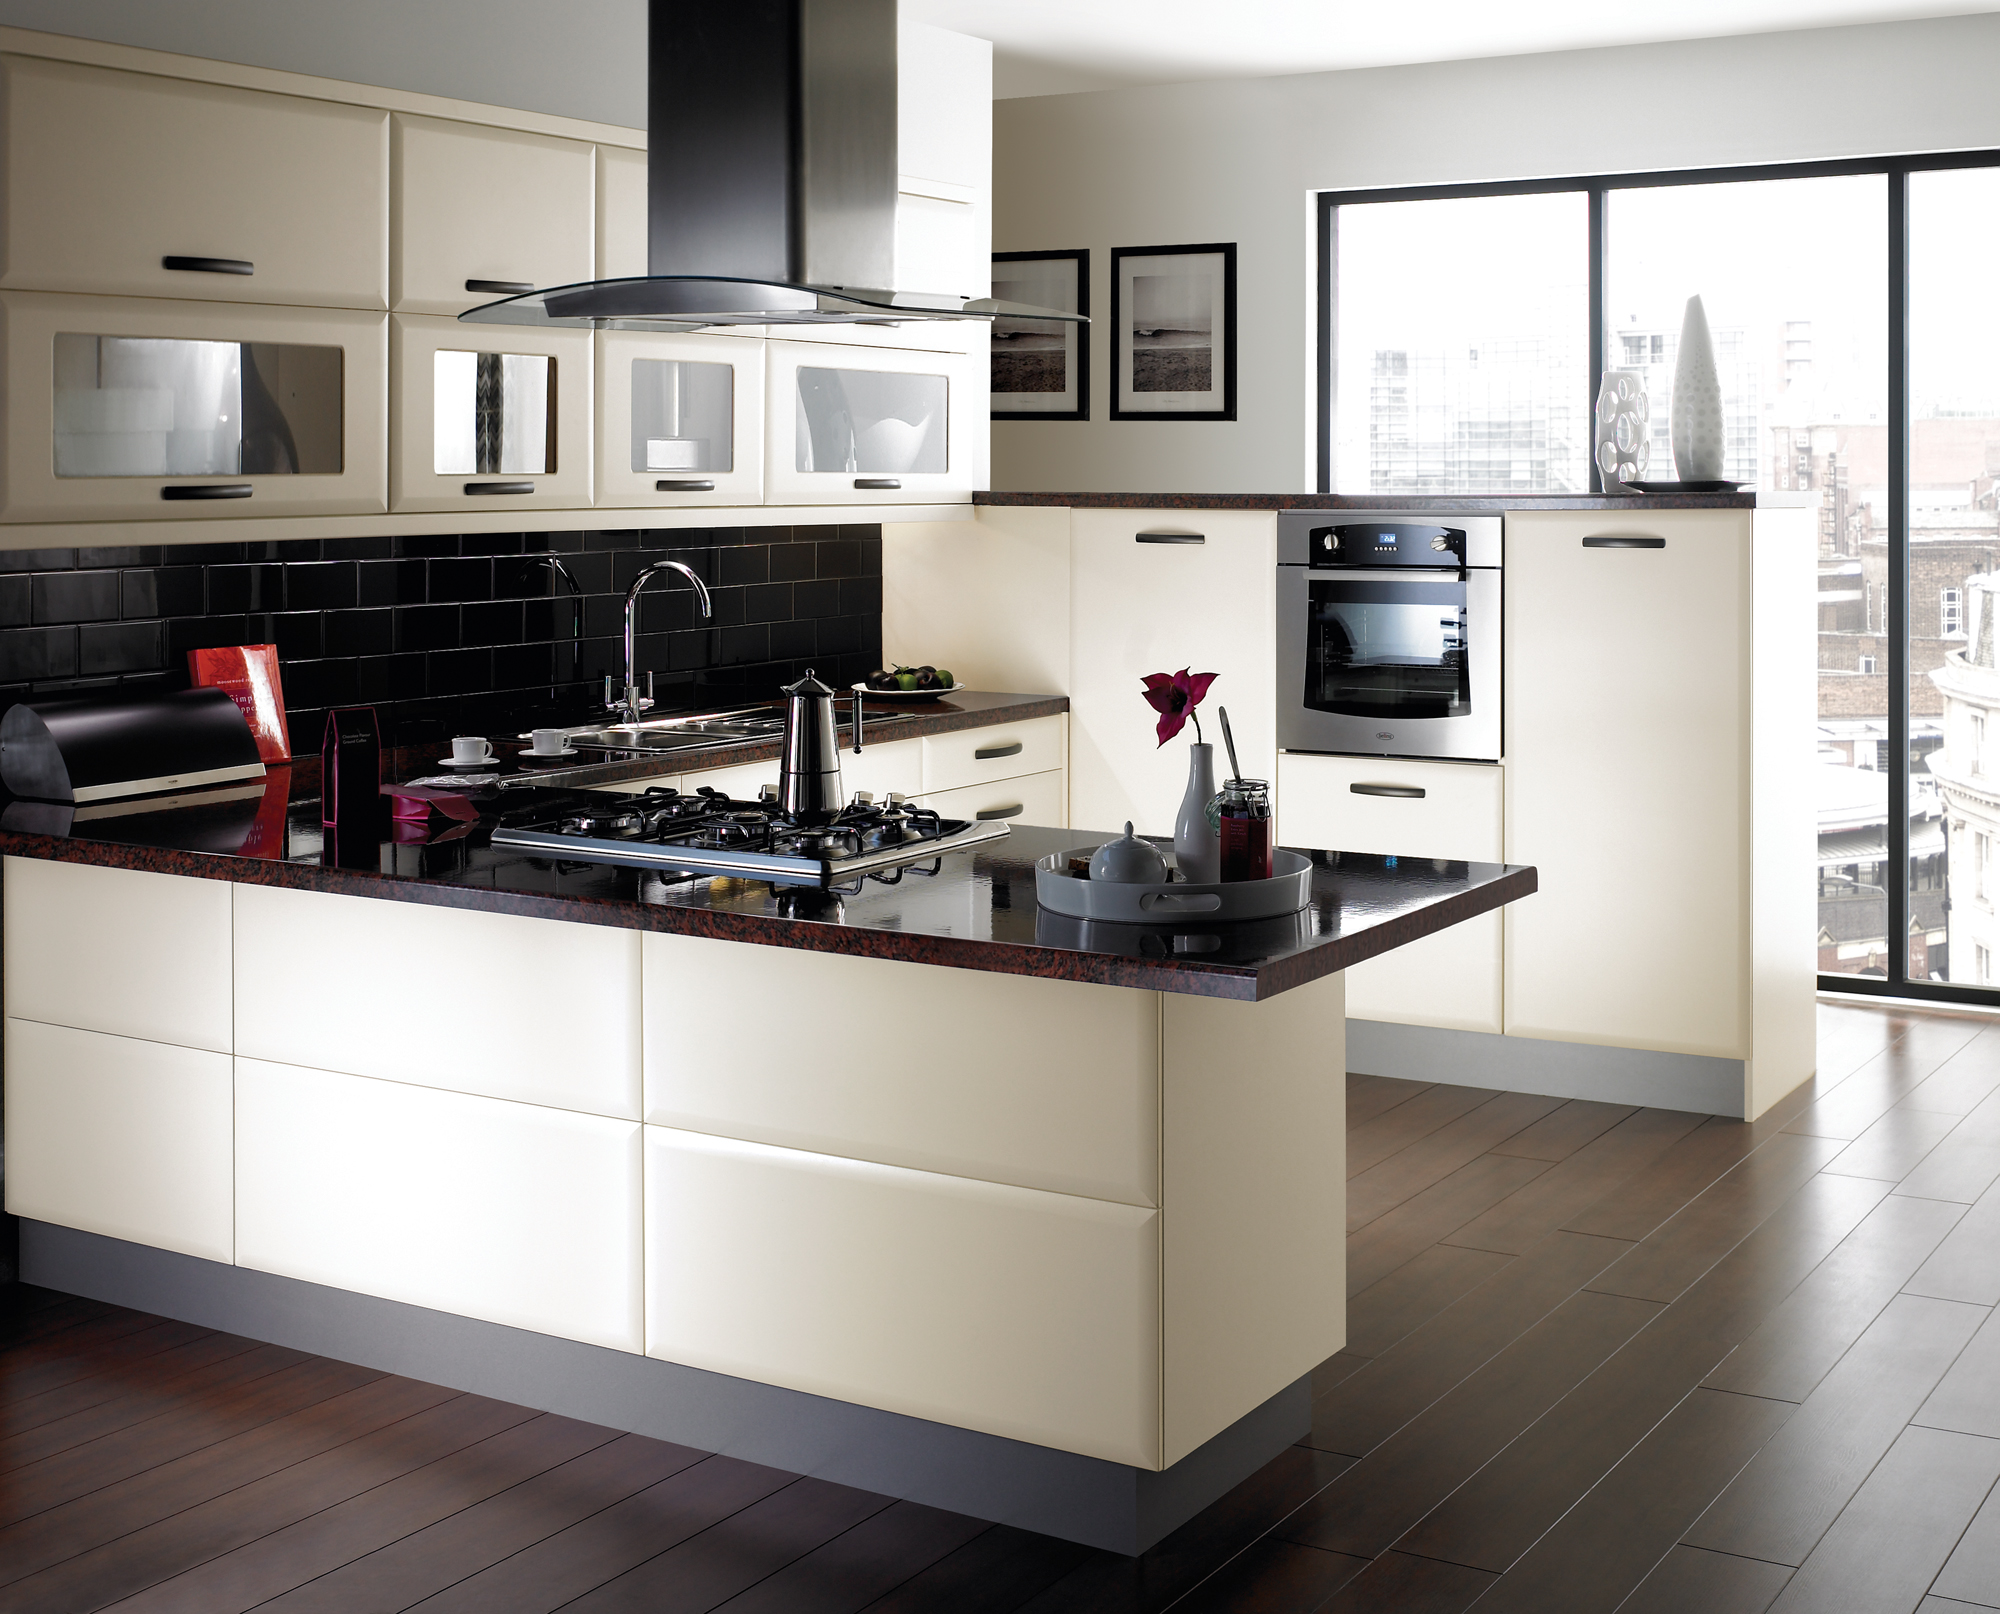 Kitchen Design Uk kitchens | checkers of churchtown southport